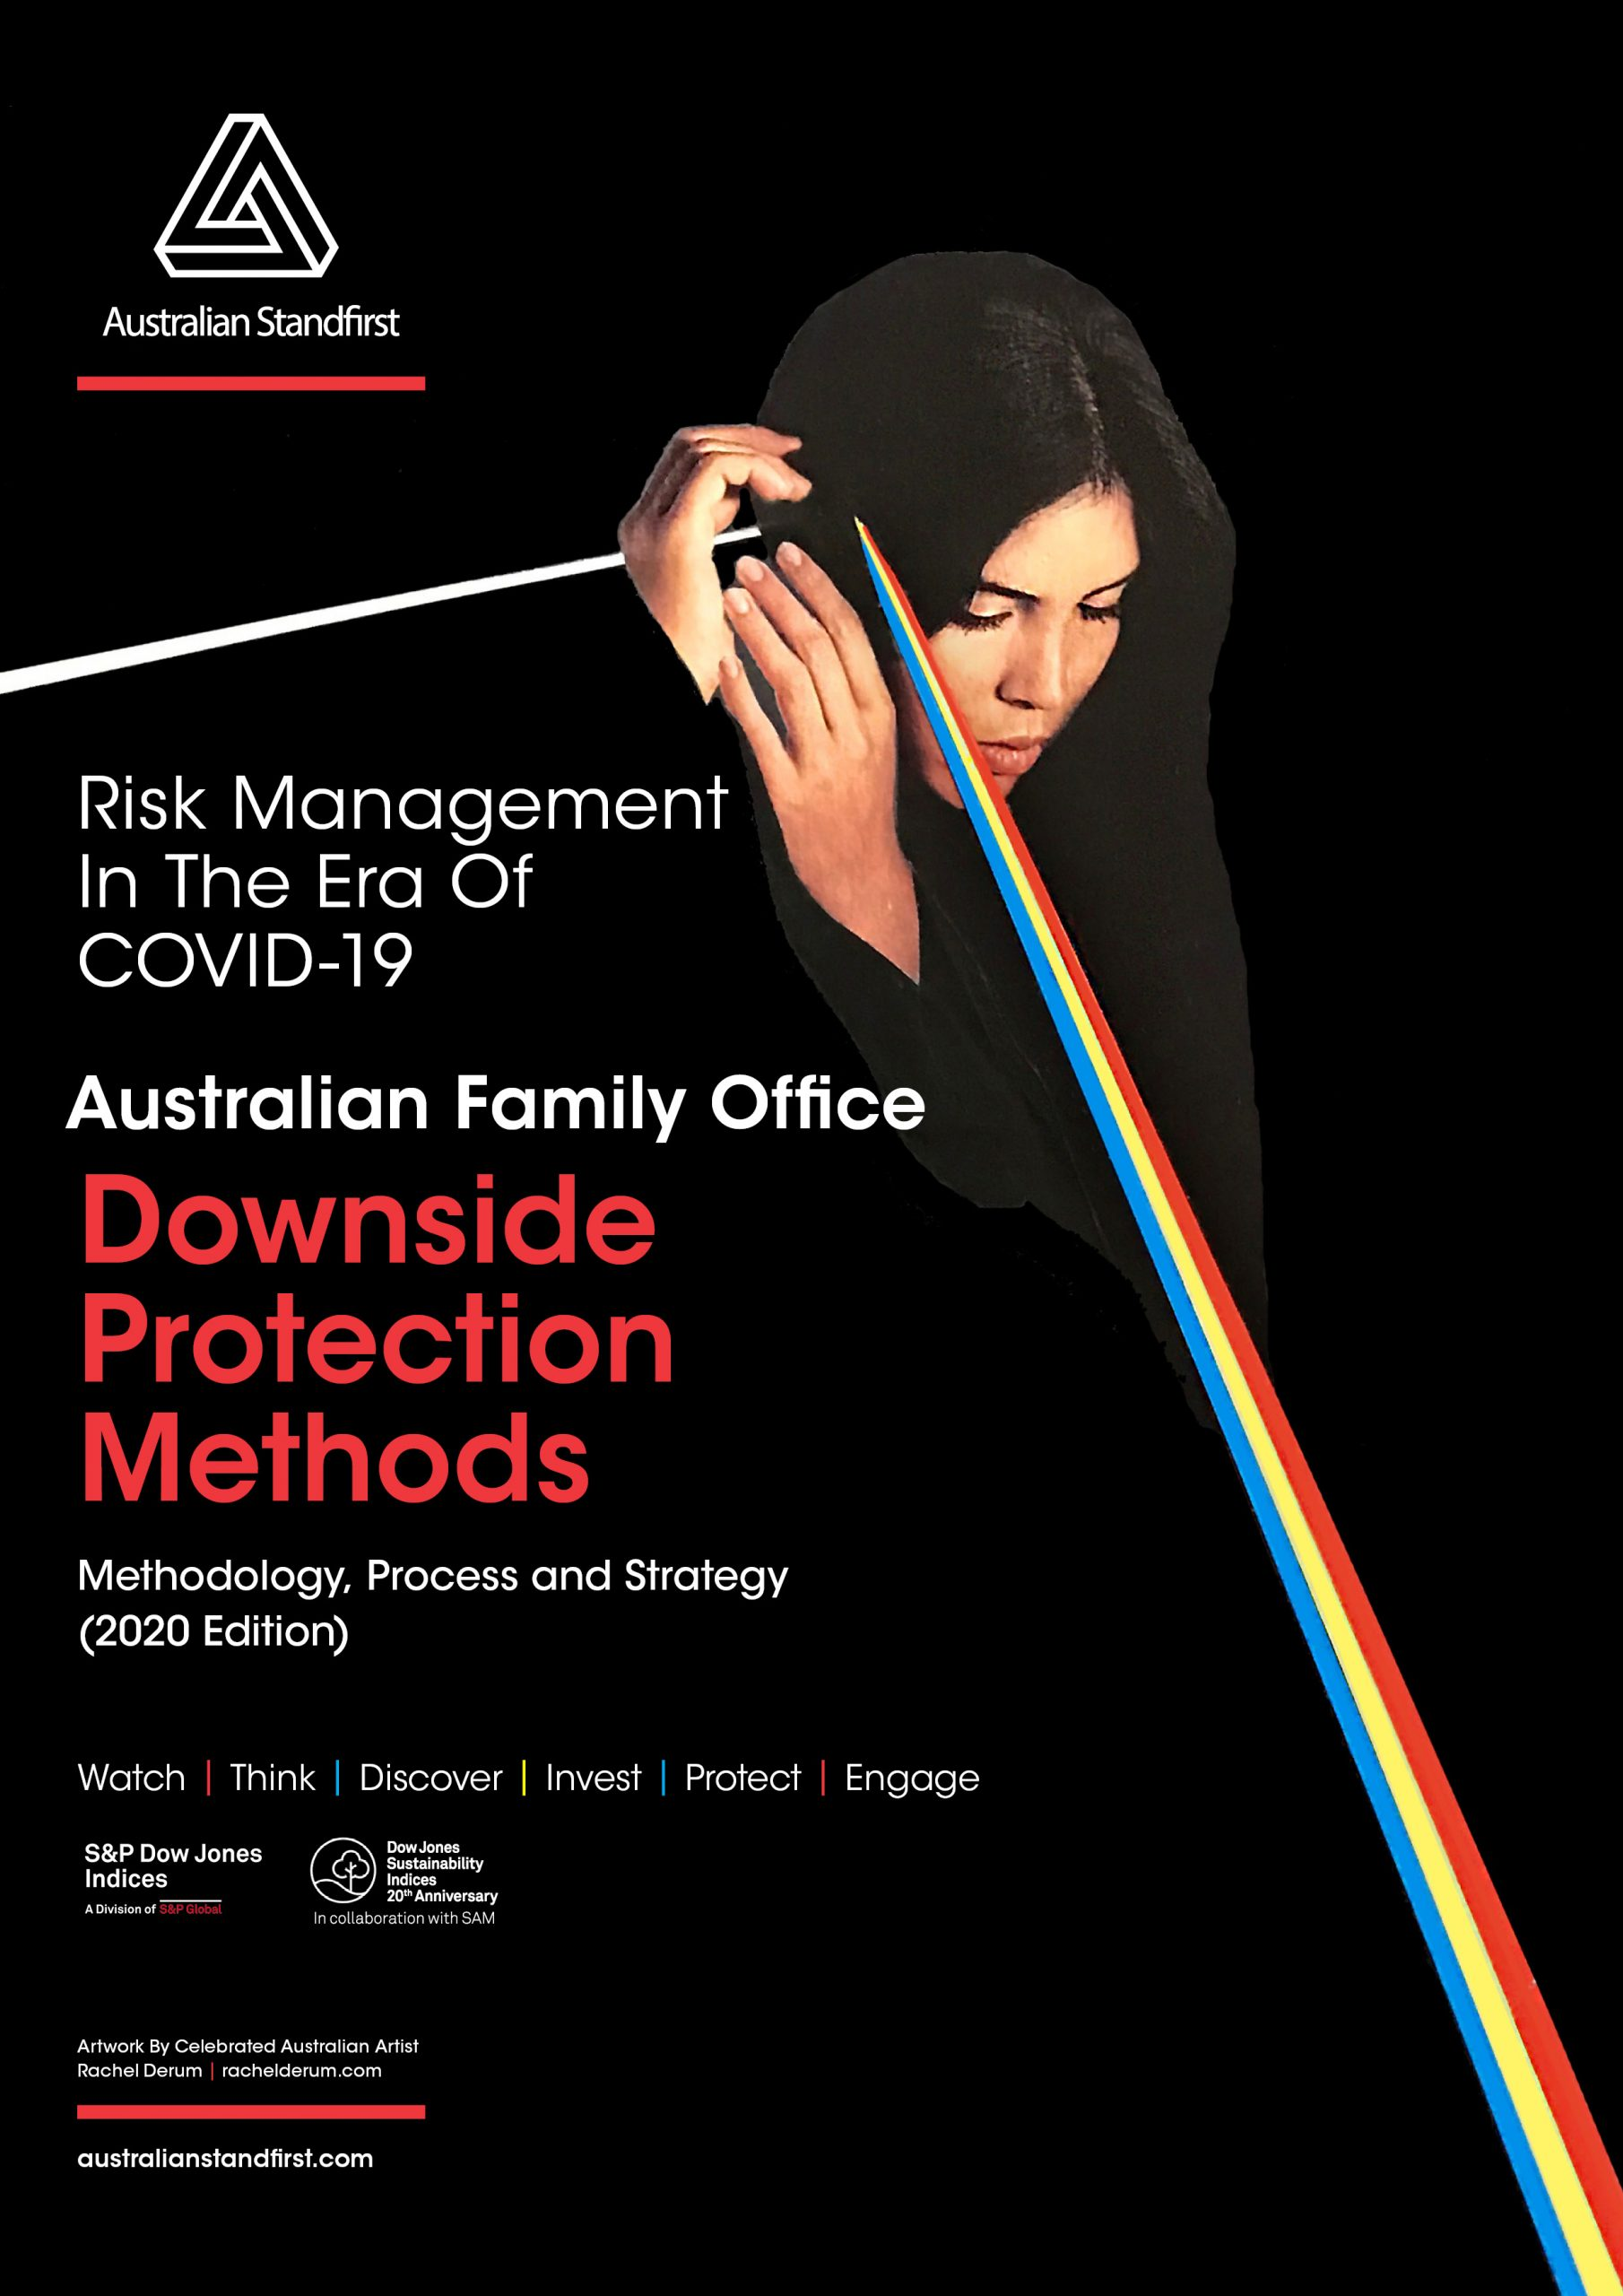 Australian_Standfirst_Family_Office_Downside_Protection_Methods